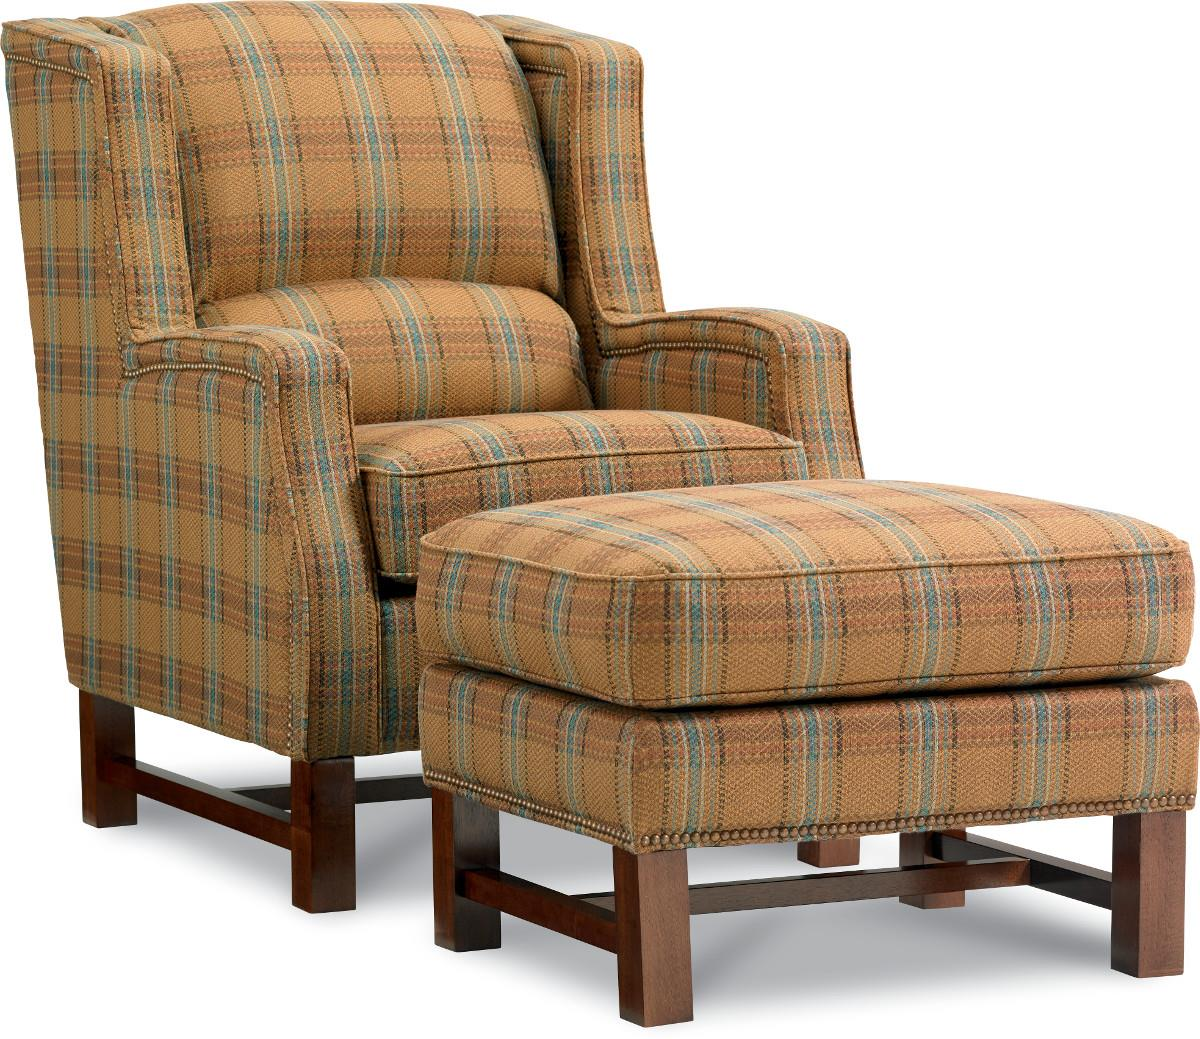 Cosmopolitan Transitional Wing Chair and Ottoman with Nailhead Studs